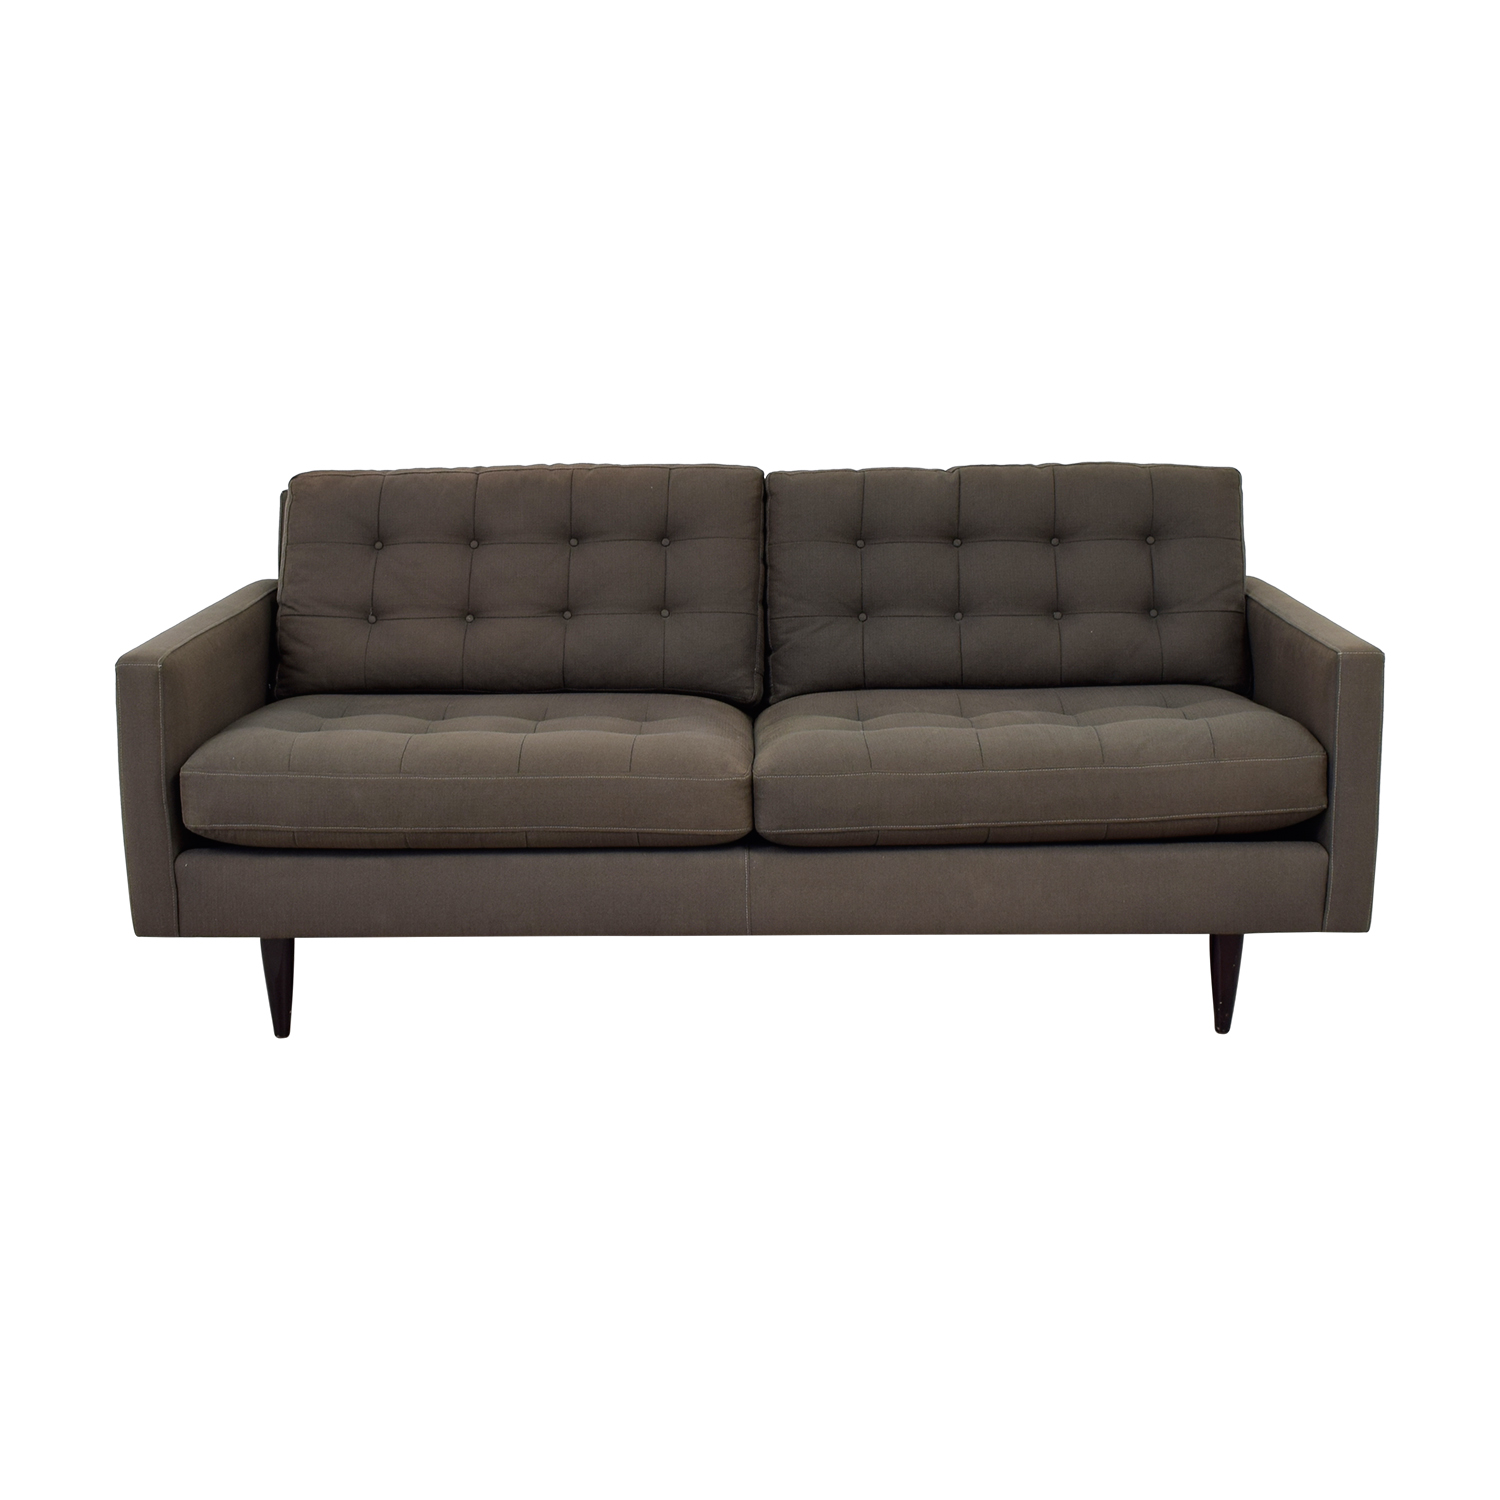 Buy Crate U0026 Barrel Crate U0026 Barrel Petrie Midcentury Apartment Sofa ...